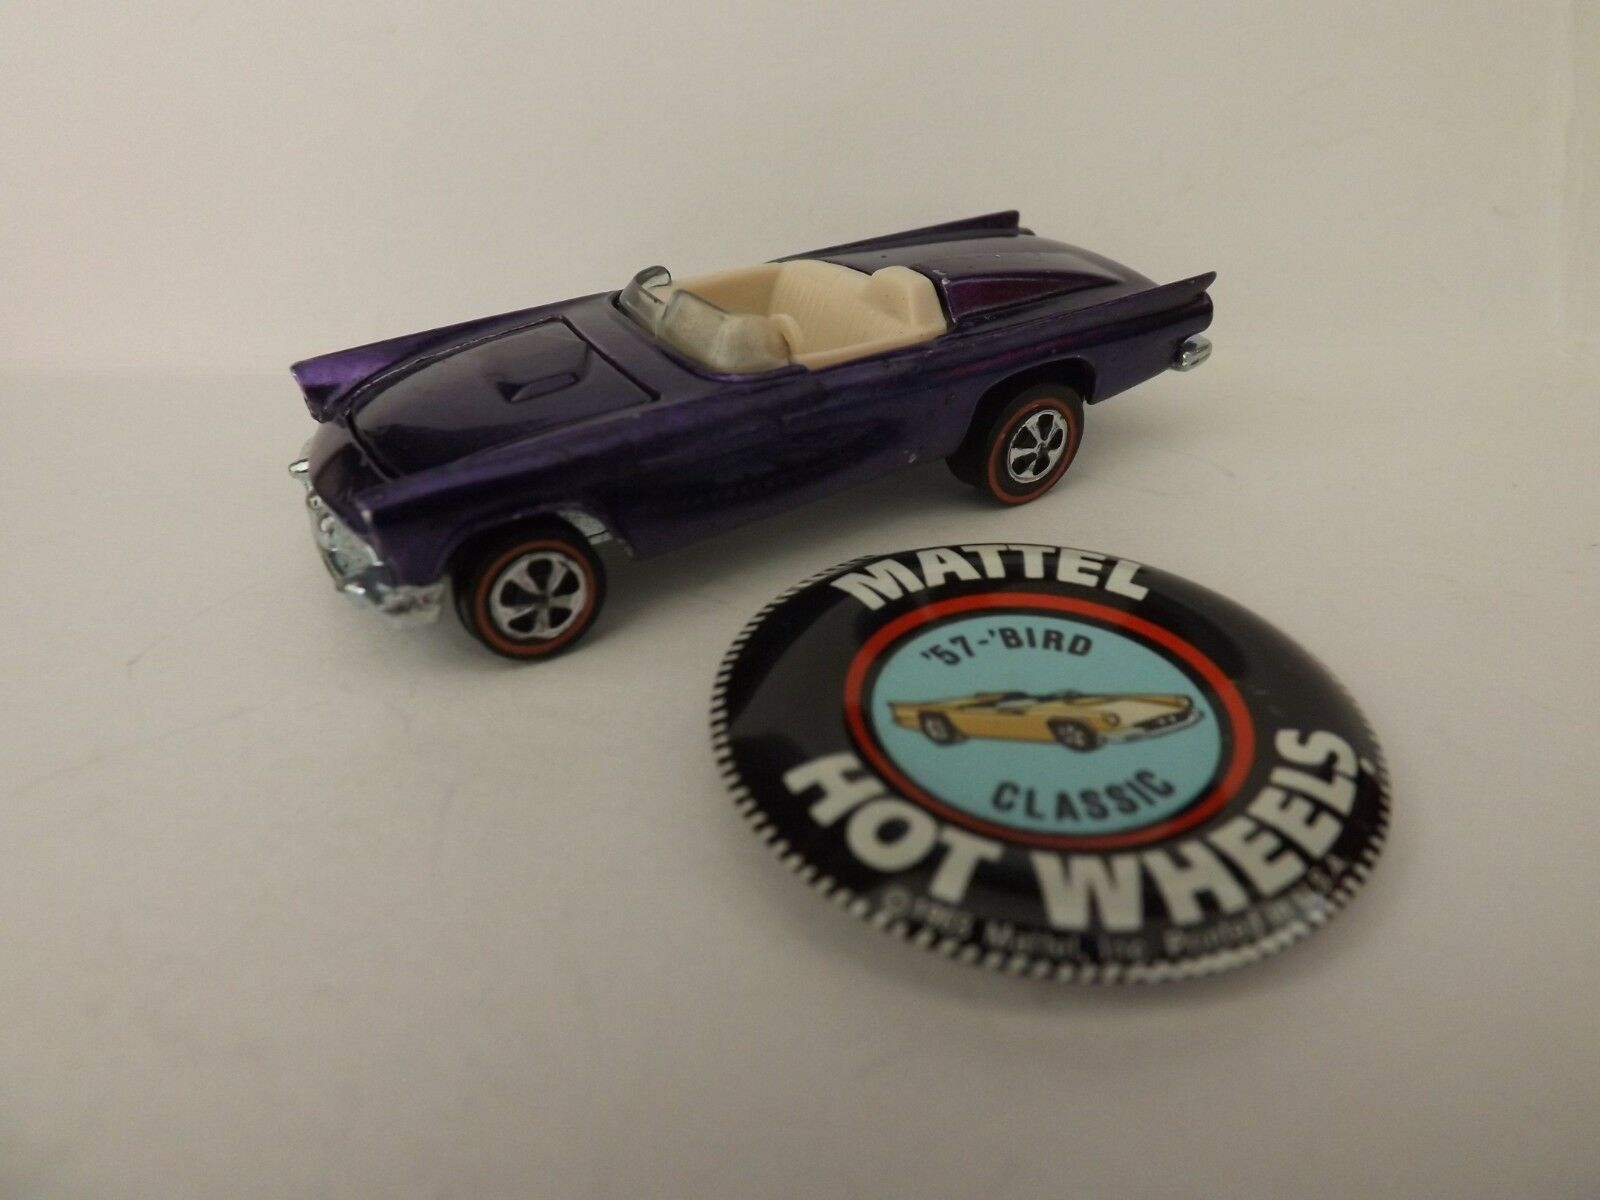 HOT HOT HOT WHEELS RED LINE CLASSIC '57 'BIRD IN PURPLE - ORIGINAL OWNER - NO PLAY 5346f5